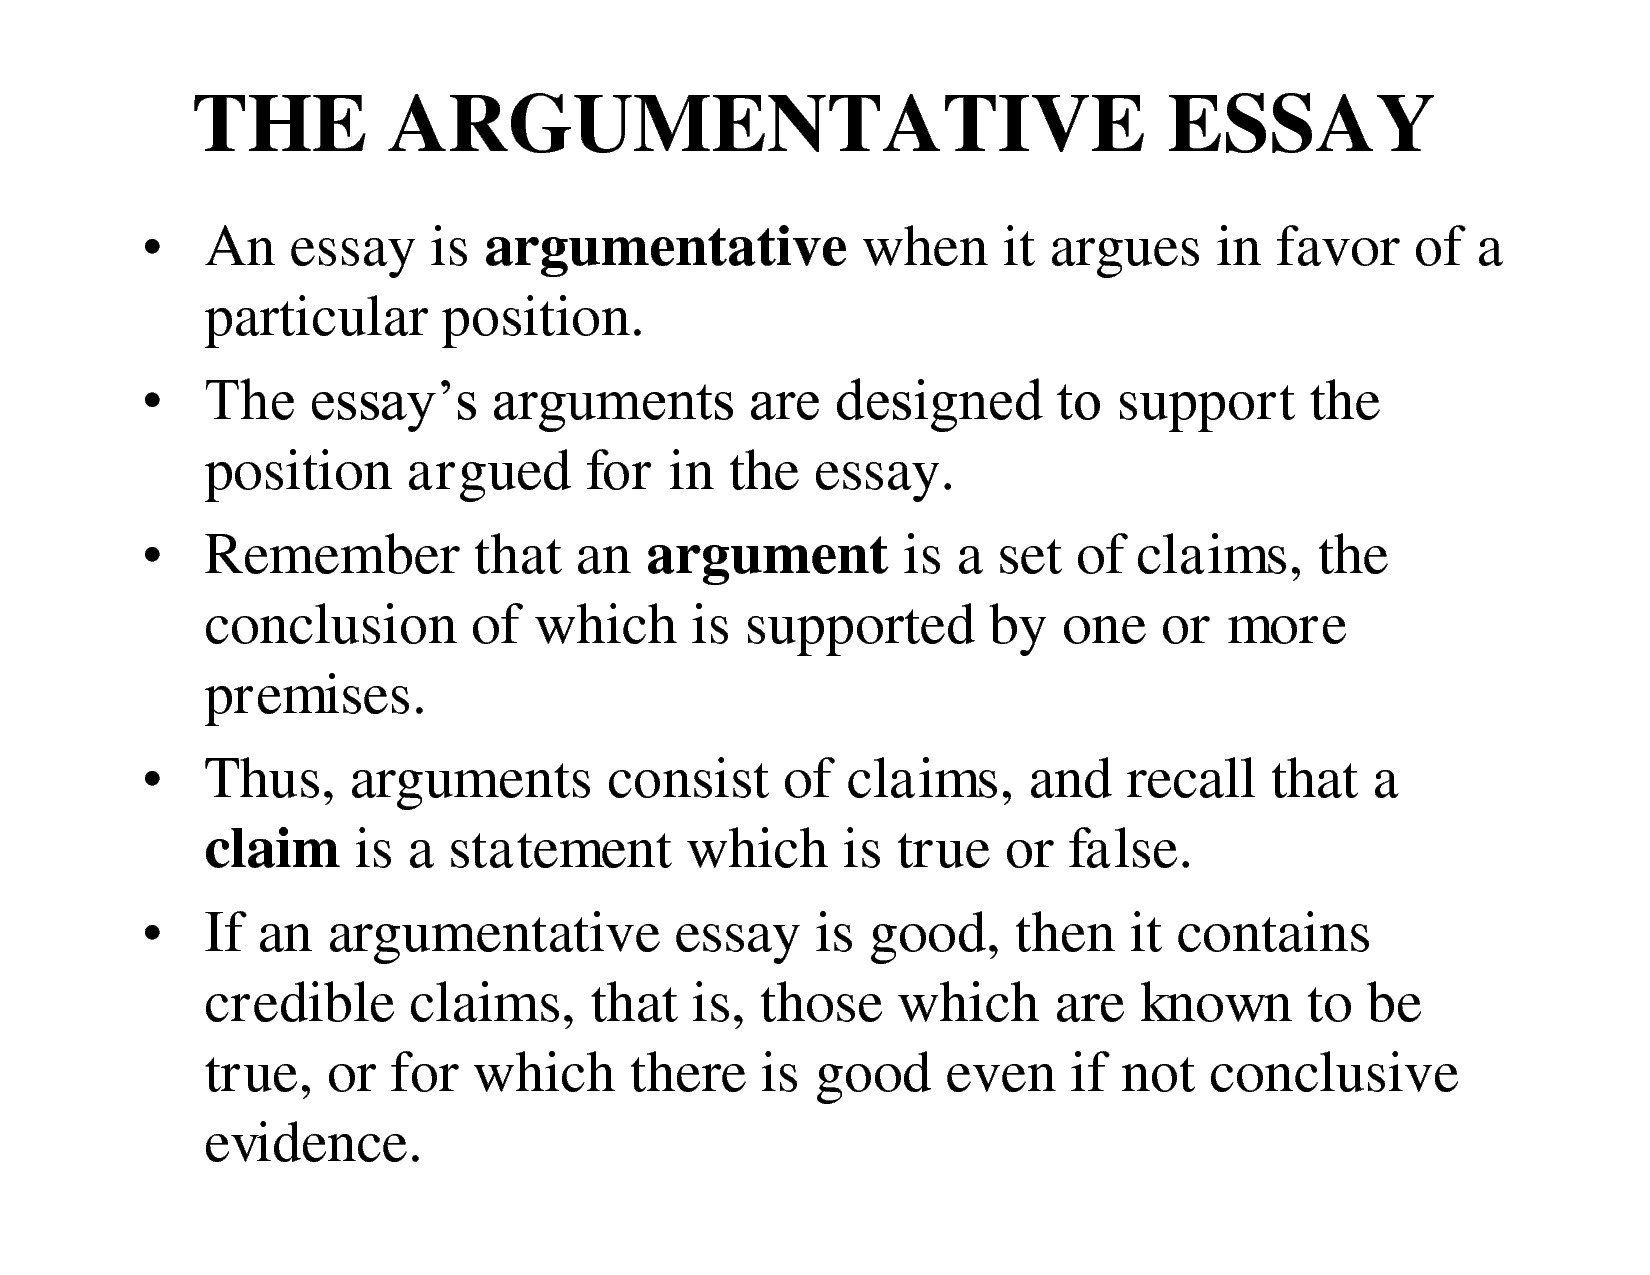 Conclusion Examples For Argumentative Essay | World Of Example inside Conclusion Examples For Argumentative Essay 18941